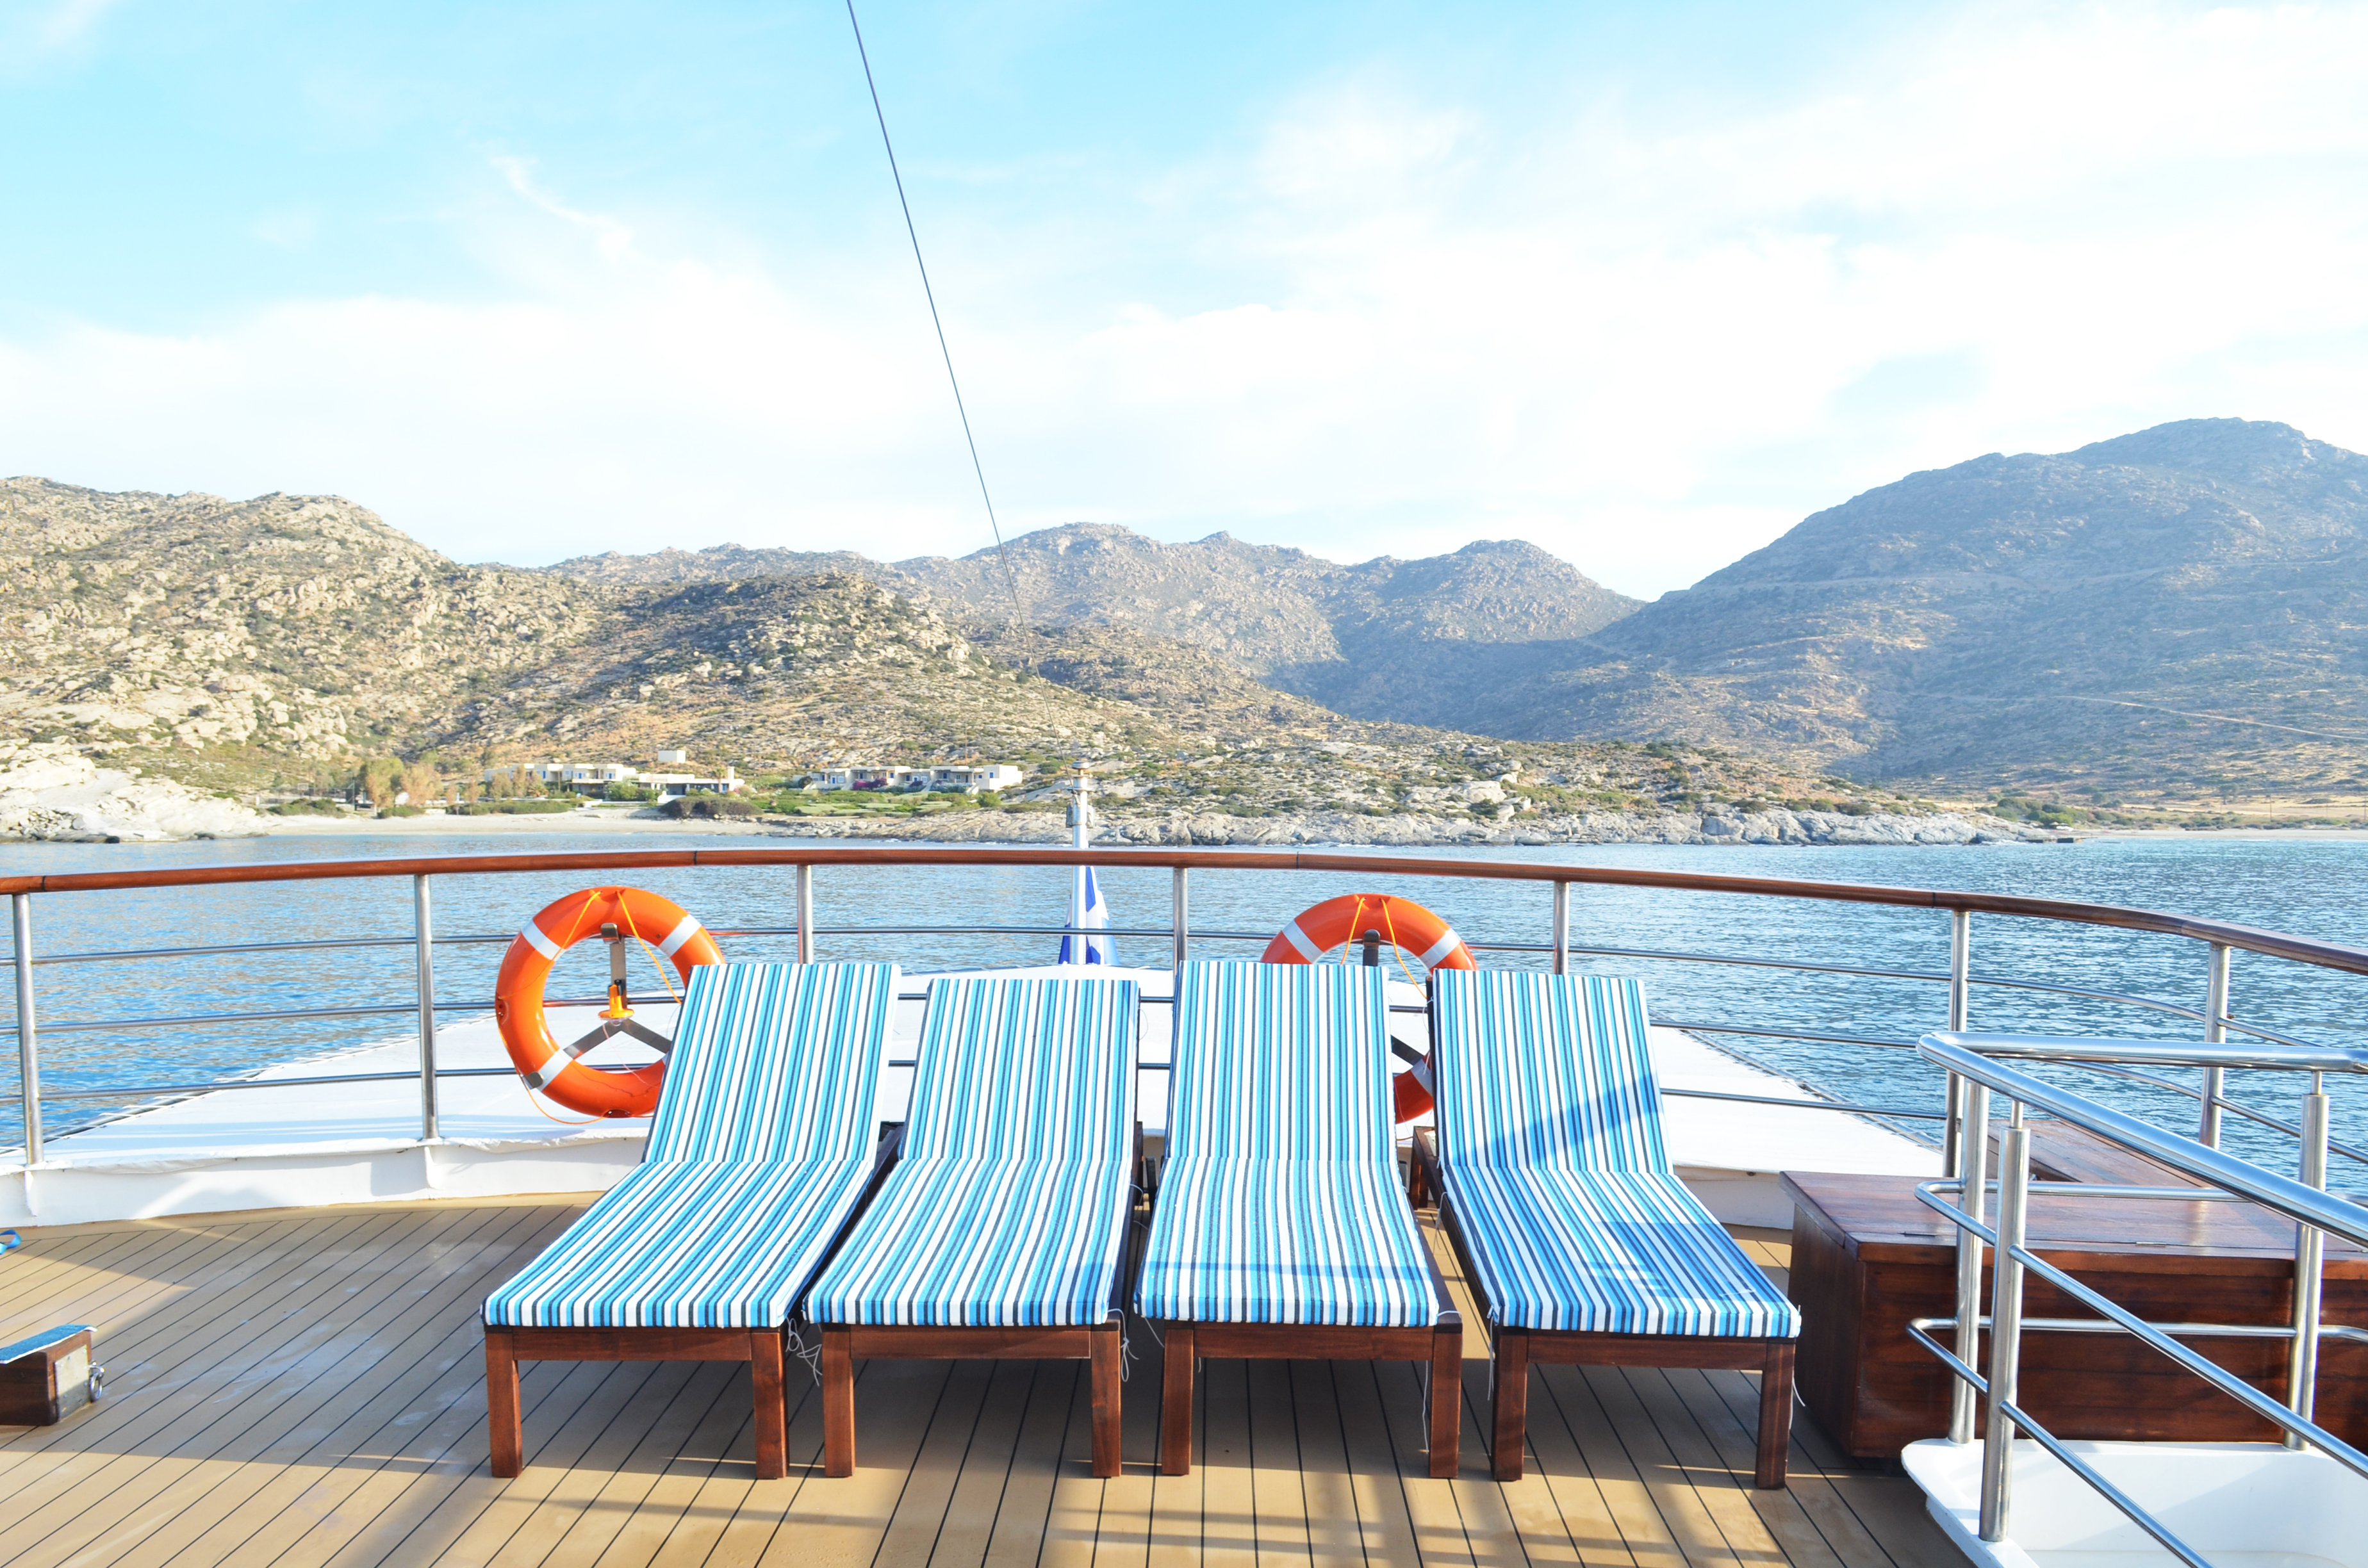 M/Y Callisto sun deck outdoor lounge yacht cruise Cuba ship